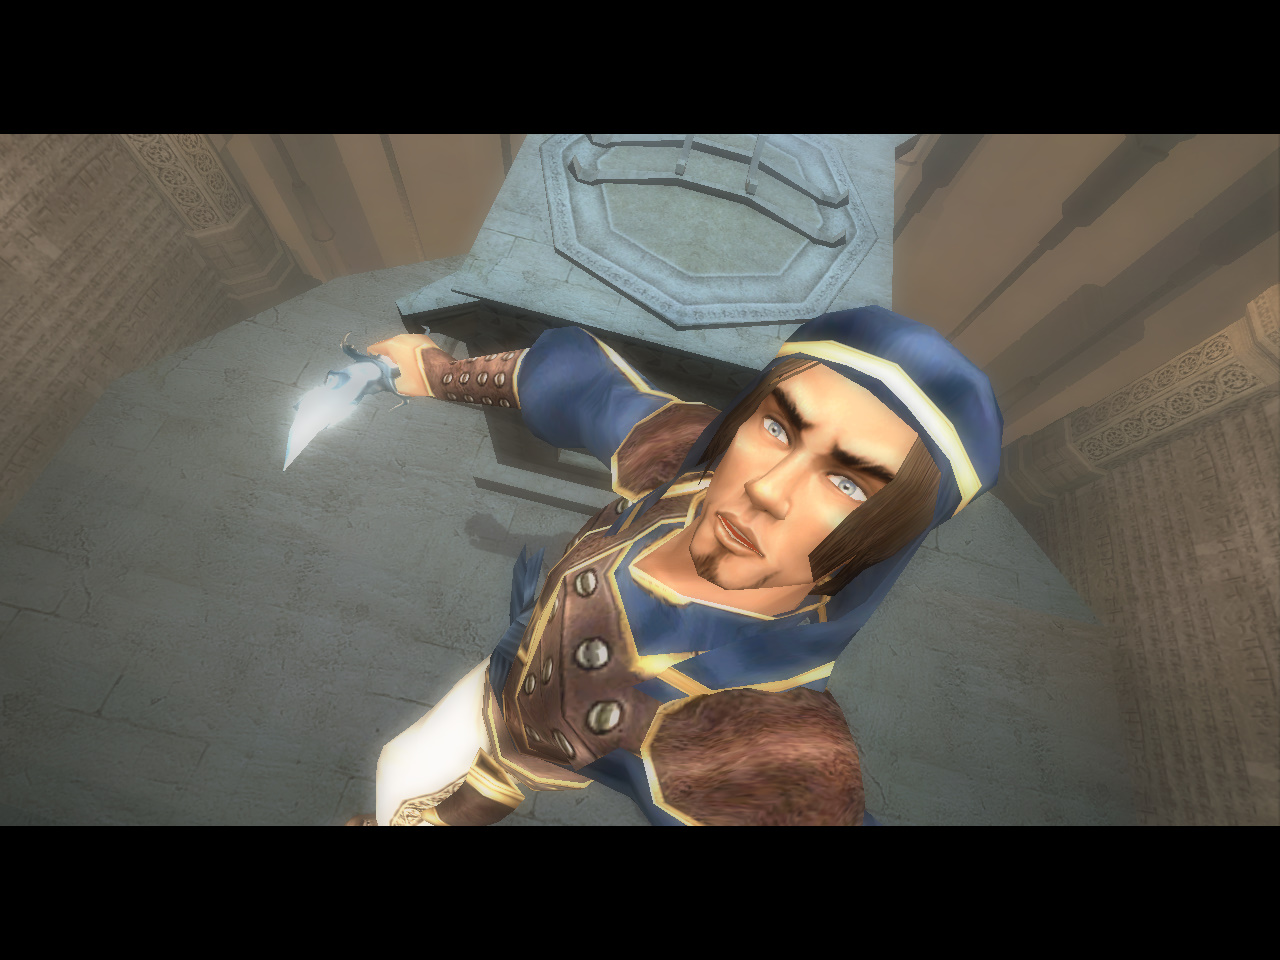 POP 2018-05-16 00-19-02-950.jpg - Prince of Persia: The Sands of Time